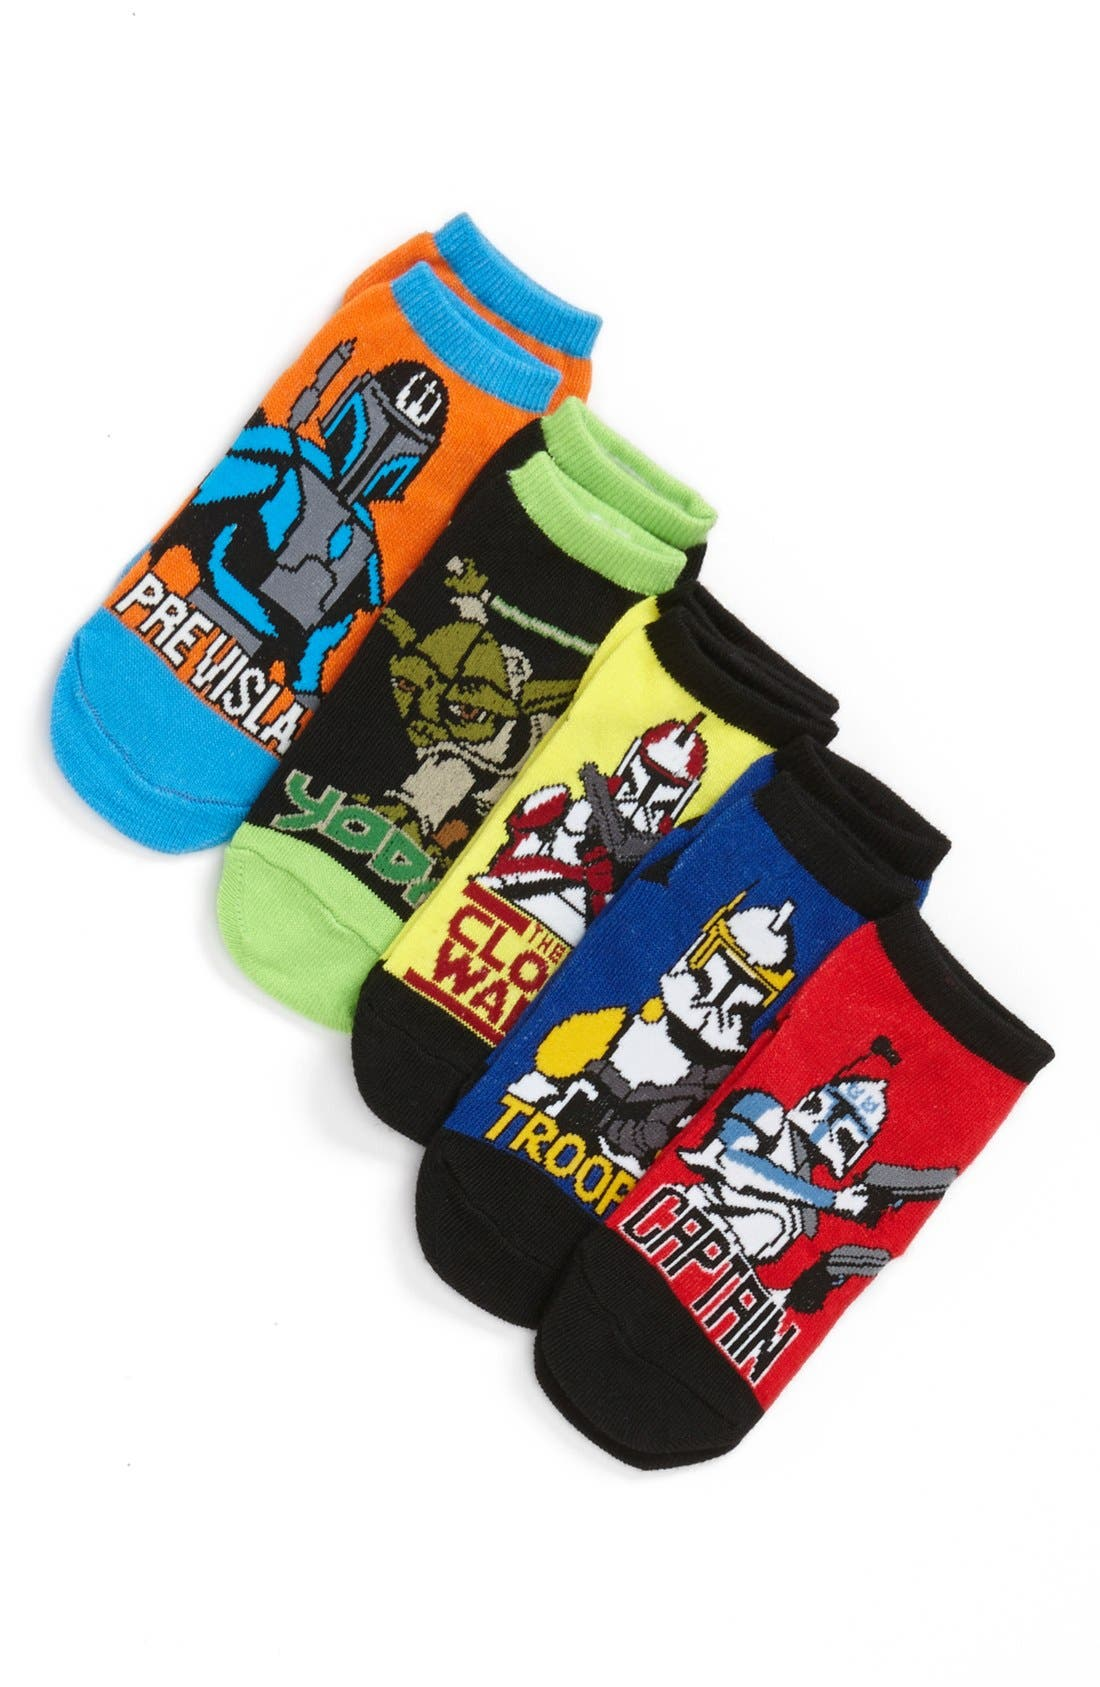 Alternate Image 1 Selected - Star Wars 'Clone Wars' Socks (Assorted 5-Pack) (Toddler Boys & Little Boys)